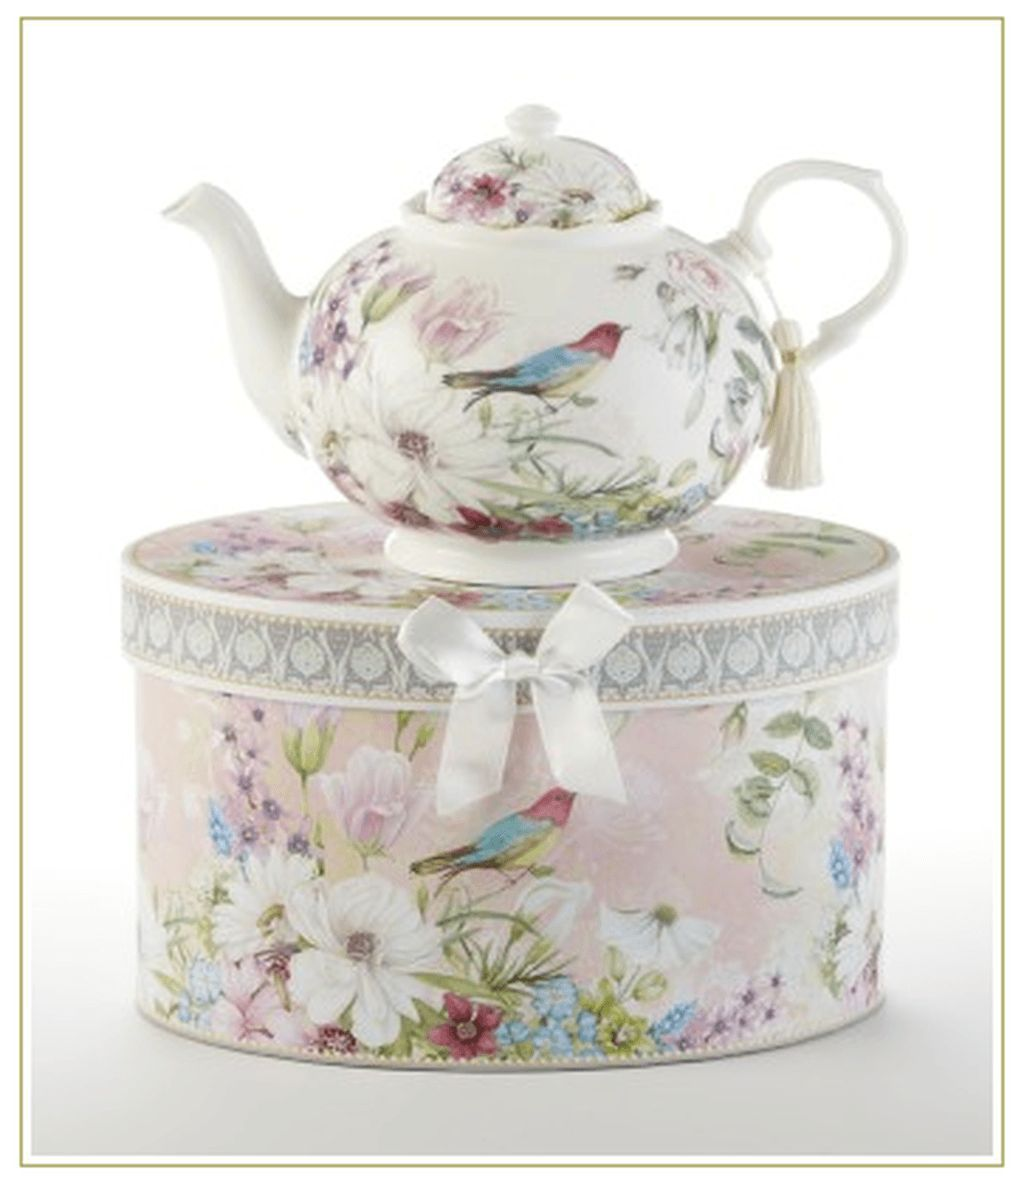 Delton Product Porcelain Tea for One in Gift Box Wildflower 5.8 Inches